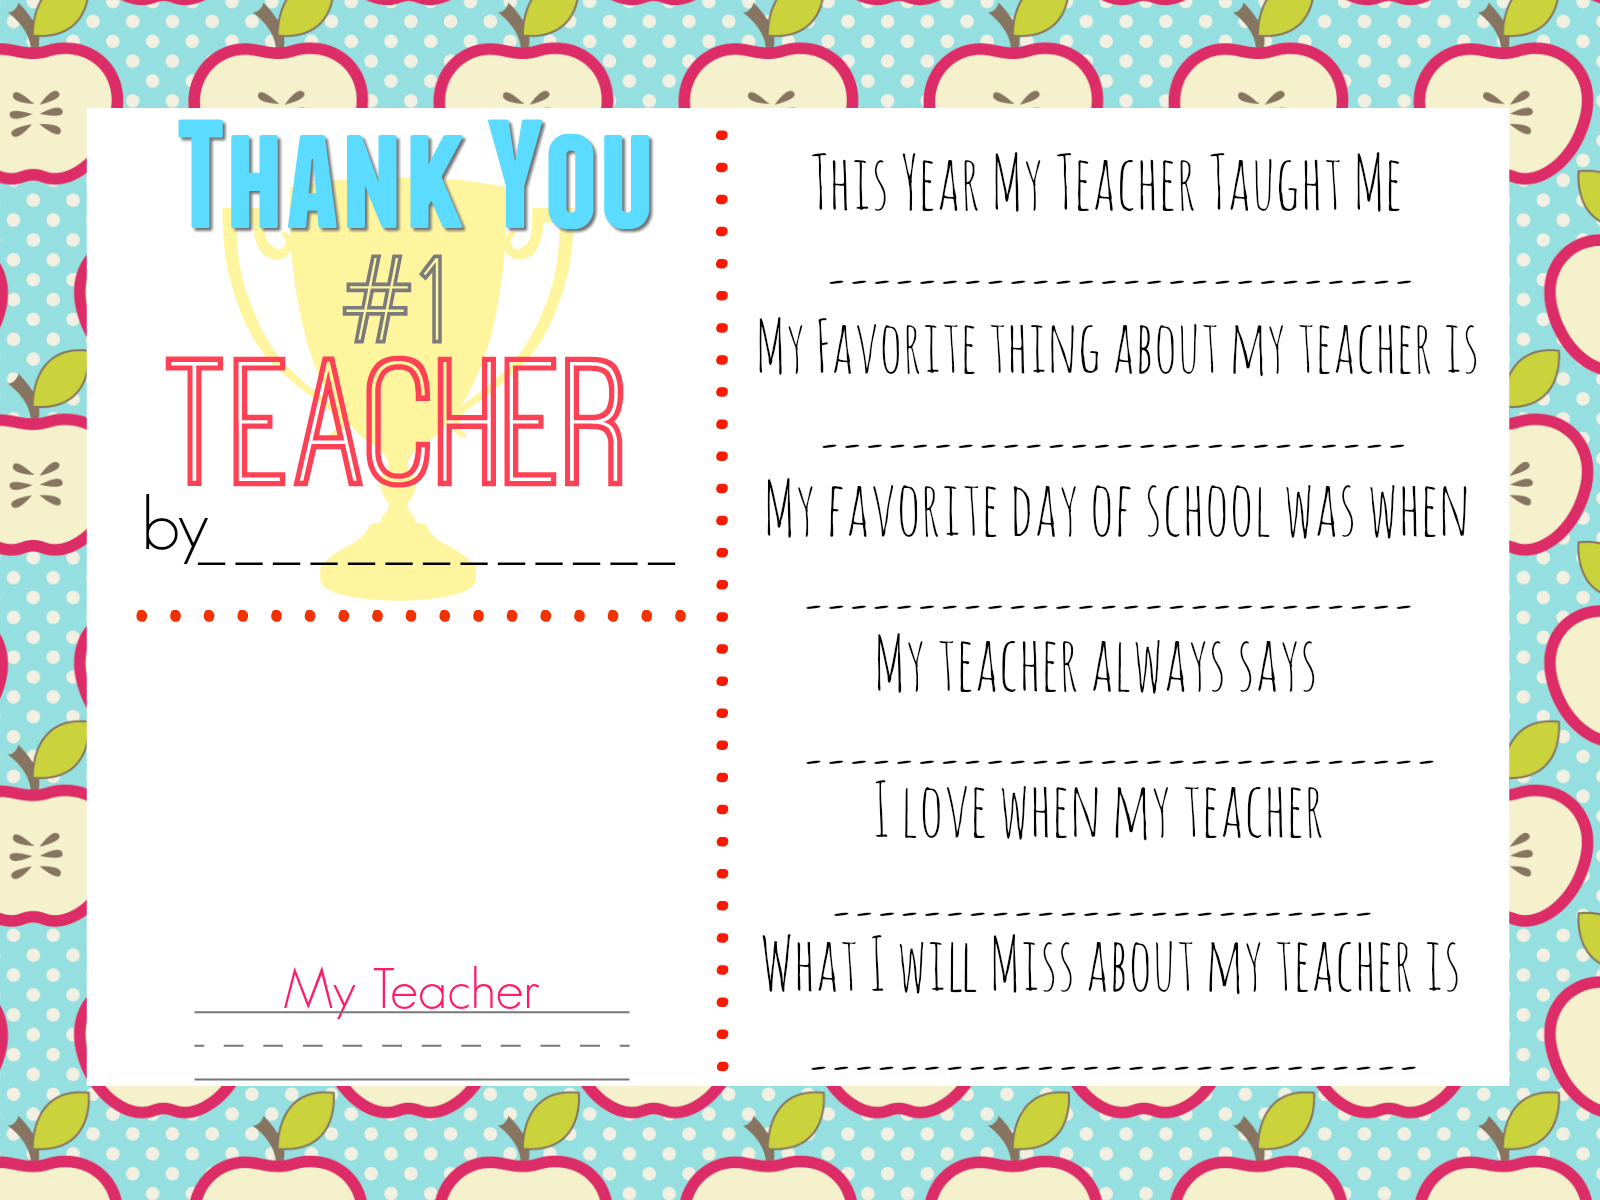 photo about Printable Thank You Cards for Teacher named 10 Trainer Reward Suggestions w/ No cost Printable Reward Tags - Hip2Help save